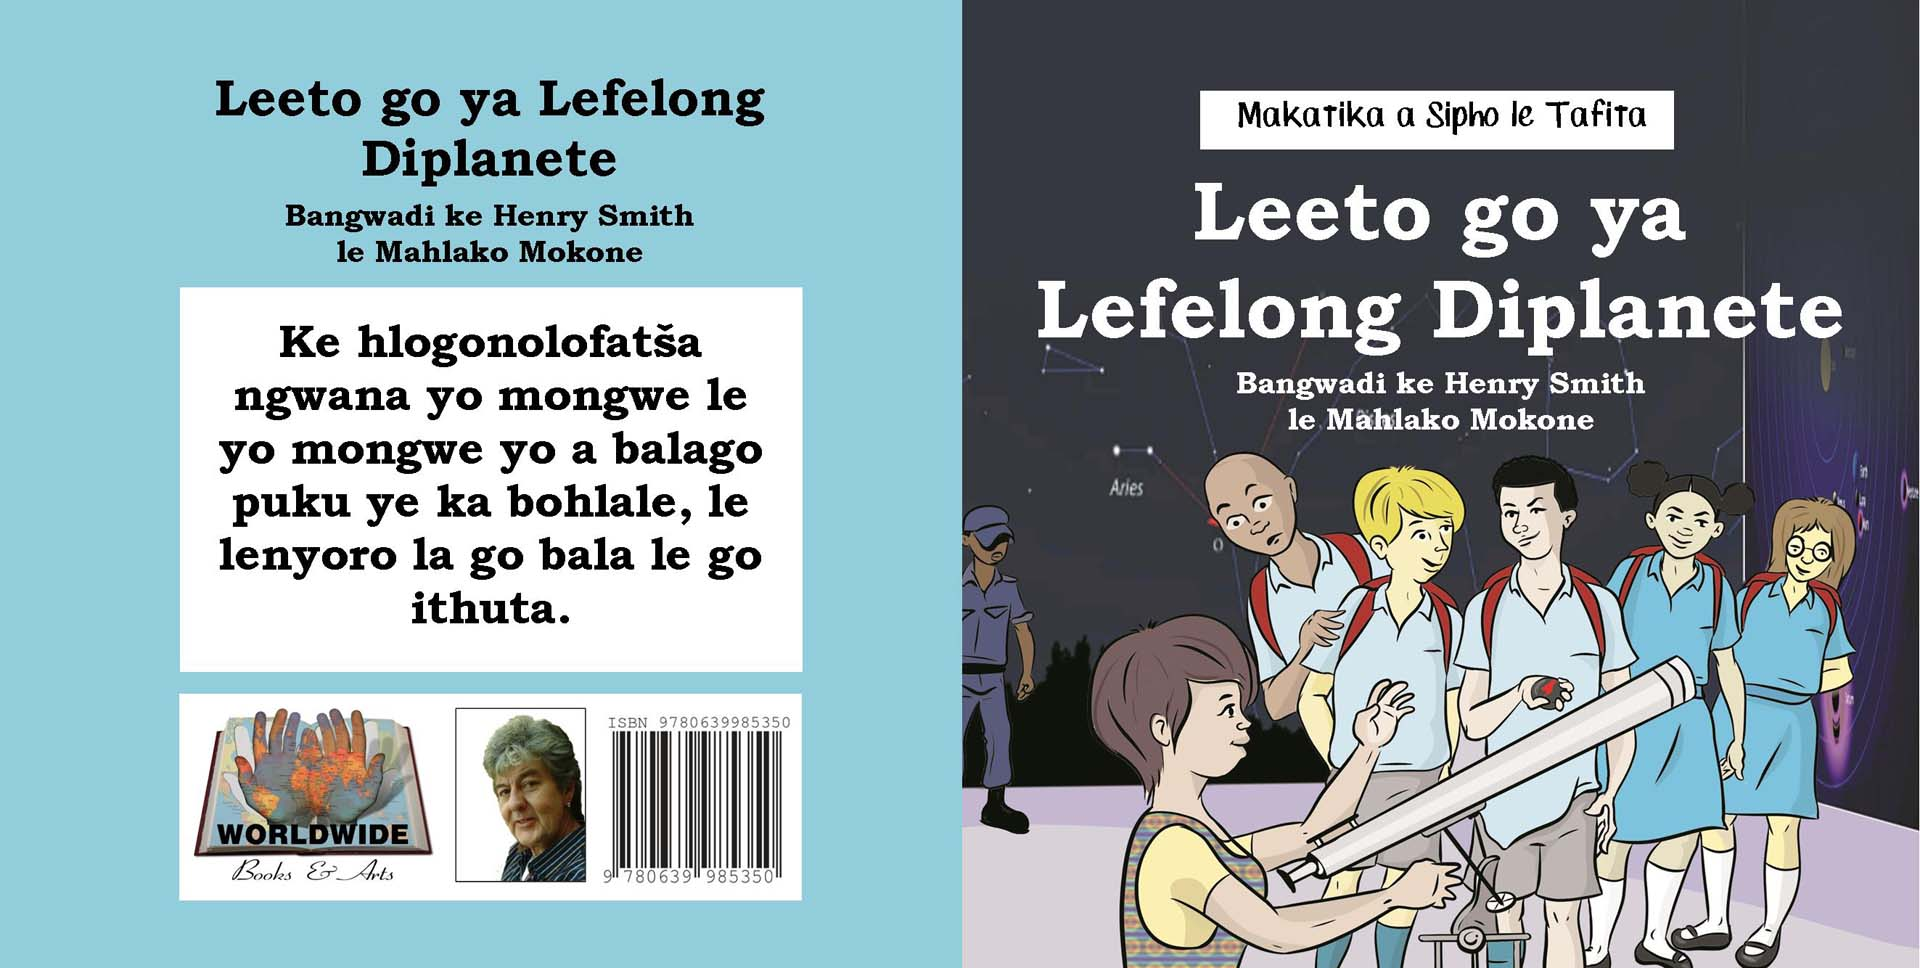 Leeto go ya Lefelong Diplanete by Henry Smith - R70.00